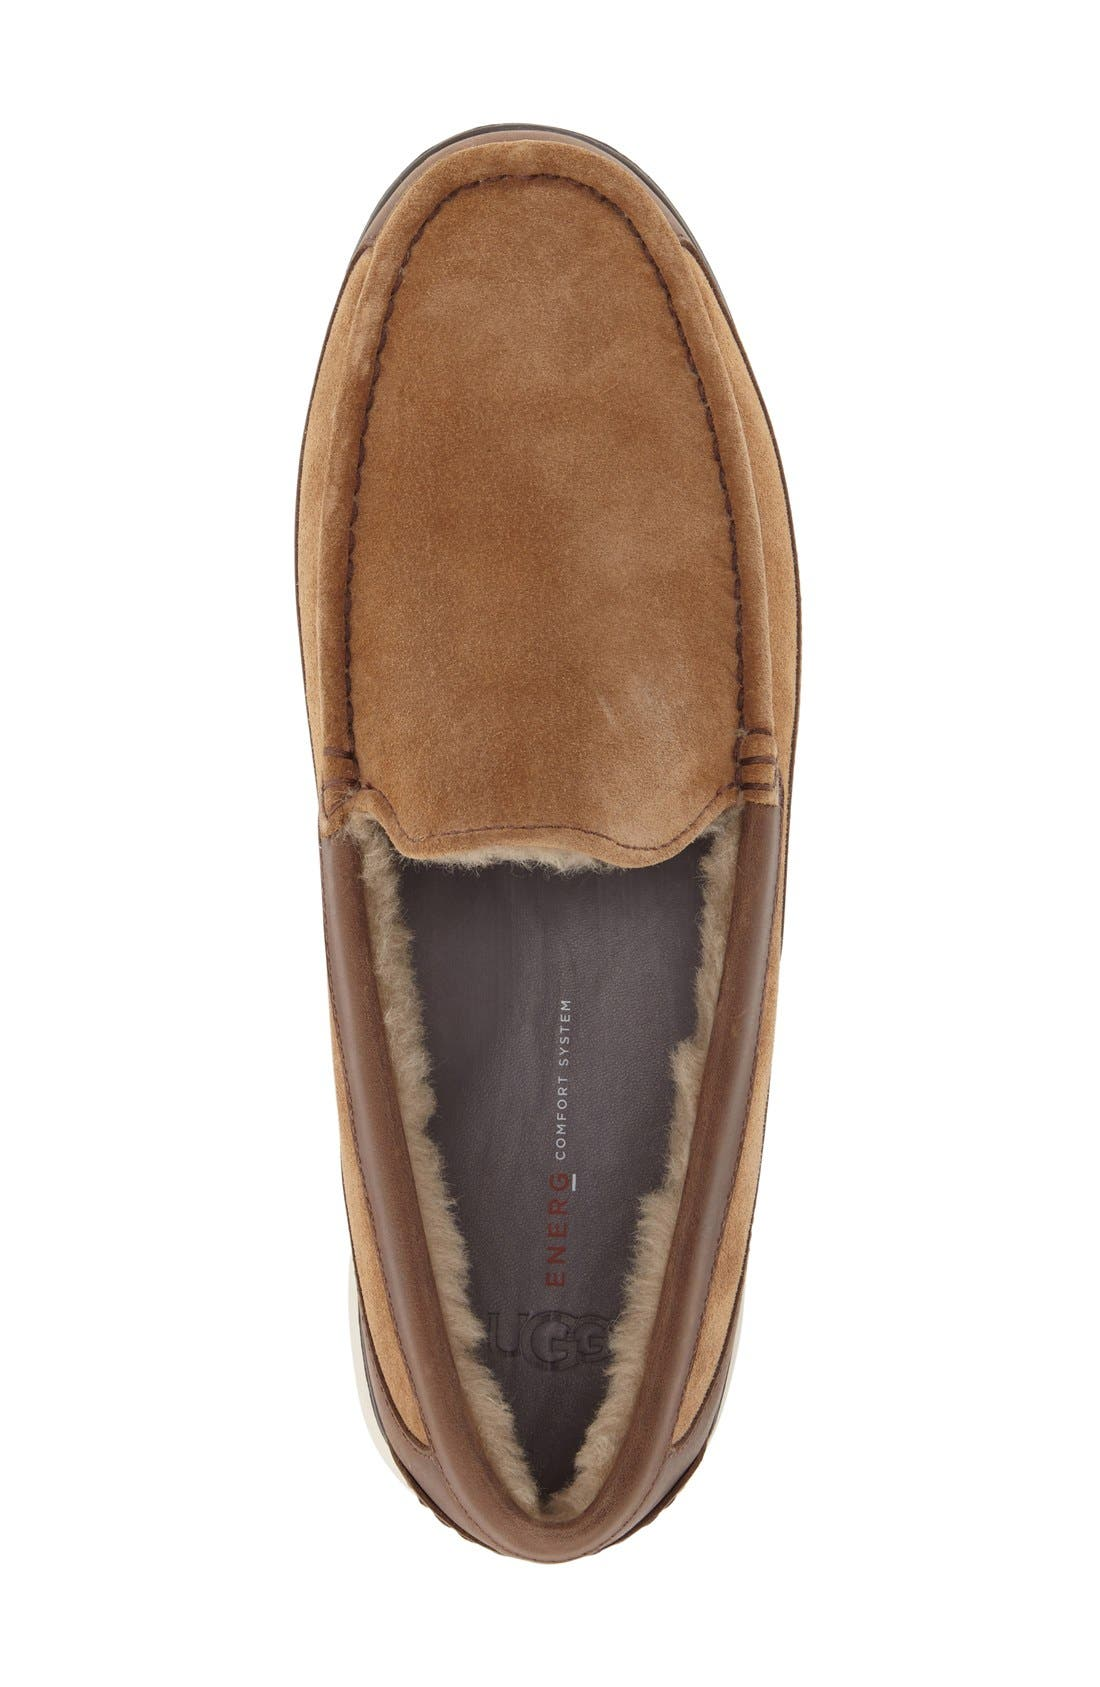 Fascot Indoor/Outdoor Slipper,                             Alternate thumbnail 4, color,                             Chestnut